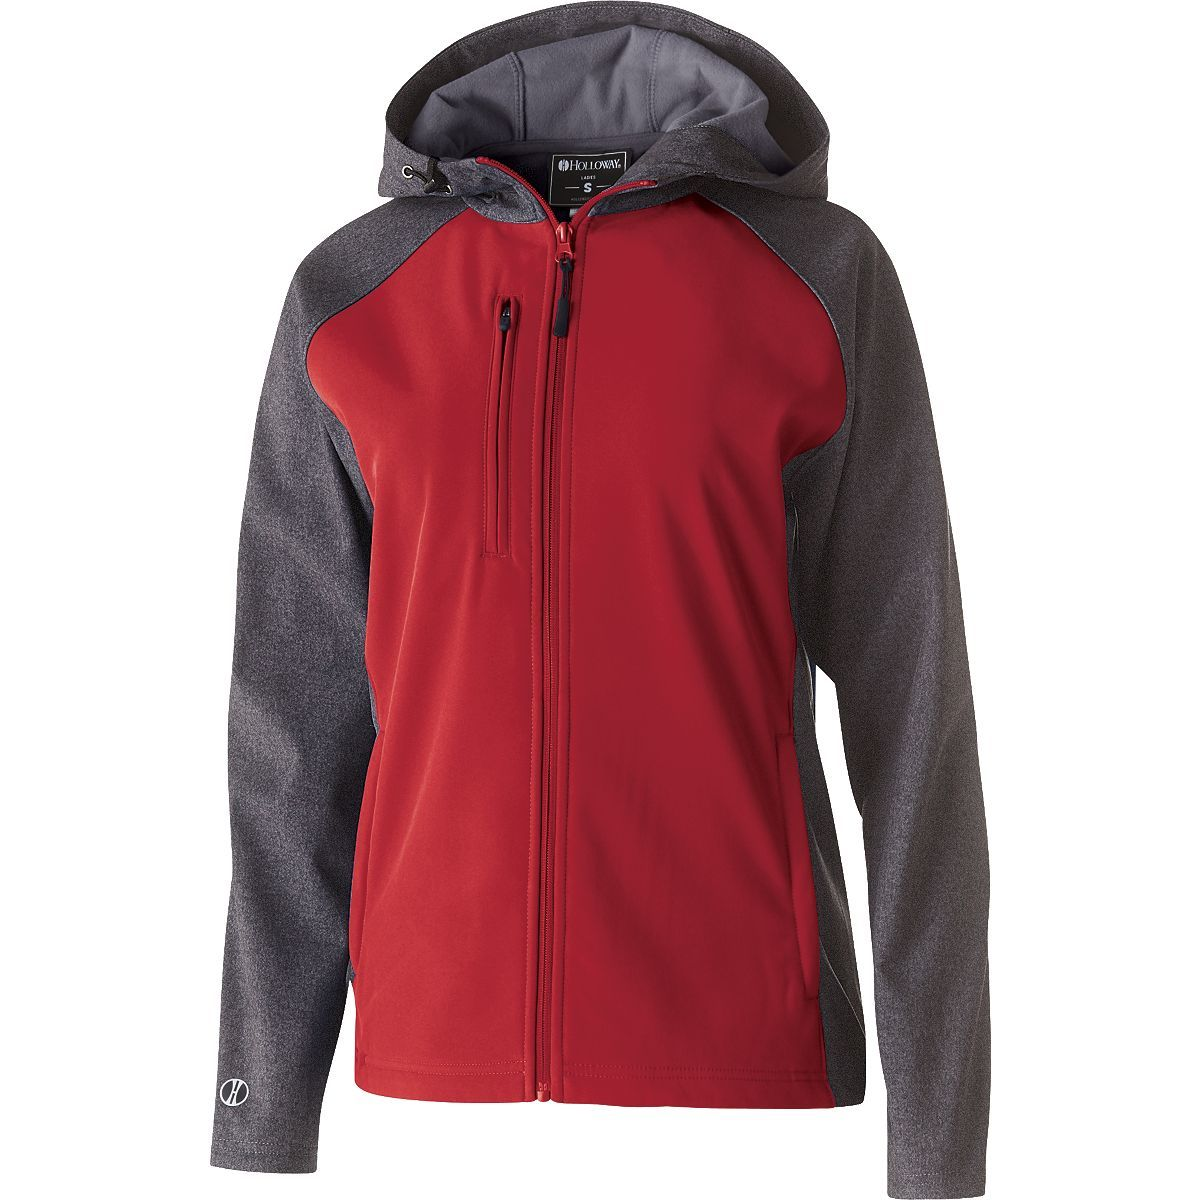 Holloway Mens Raider Softshell Jacket